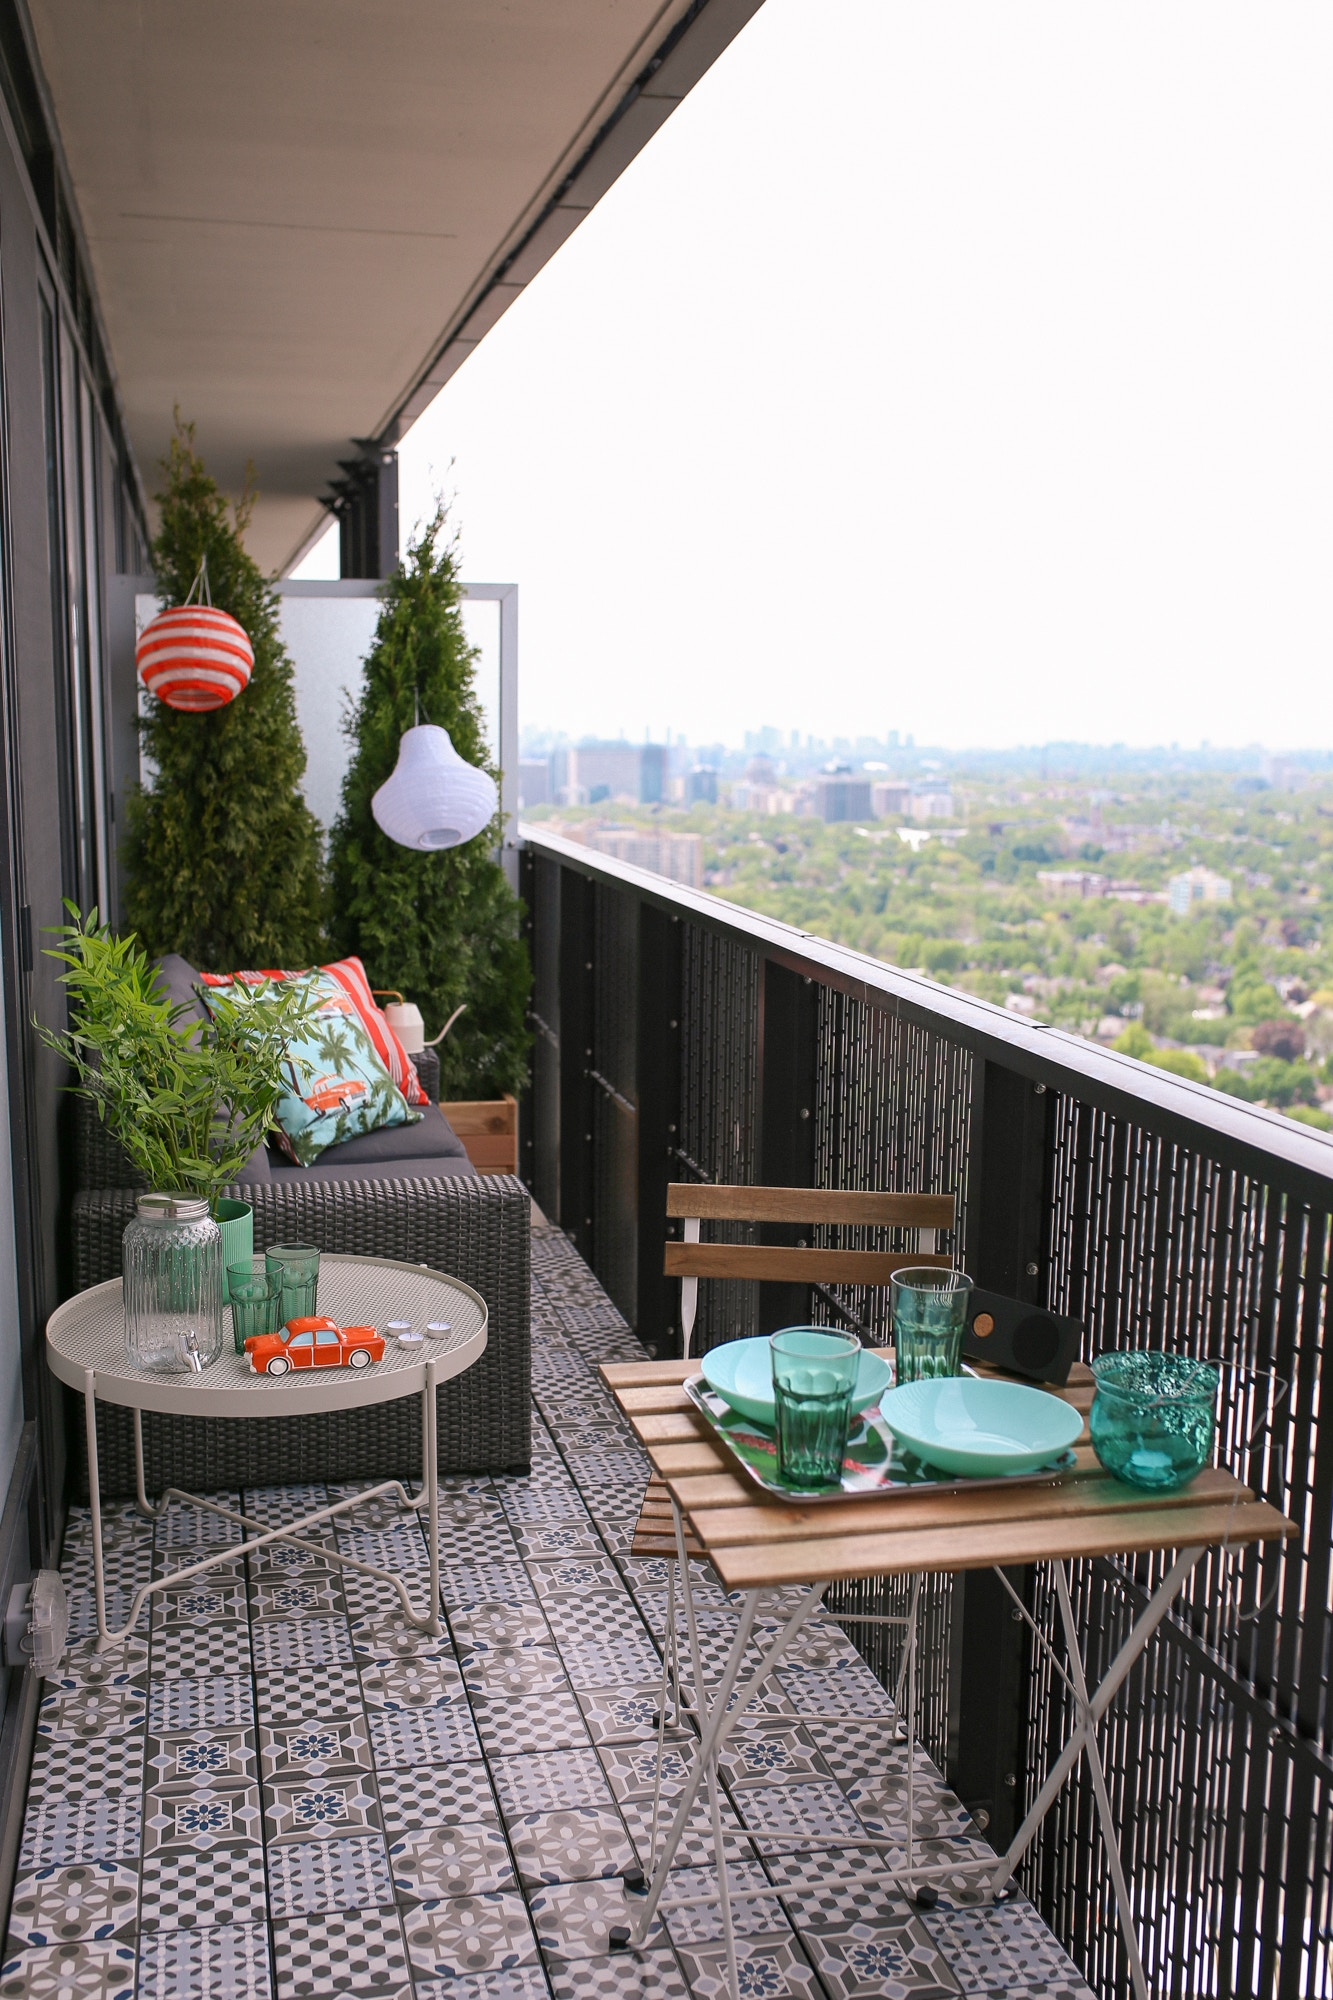 The IKEA Mällsten decking is a must have to personalize your apartment balcony. The Mallsten decking is super easy to install and is made of real porcelain tiles! It feels like I'm in Morocco or Lisbon!